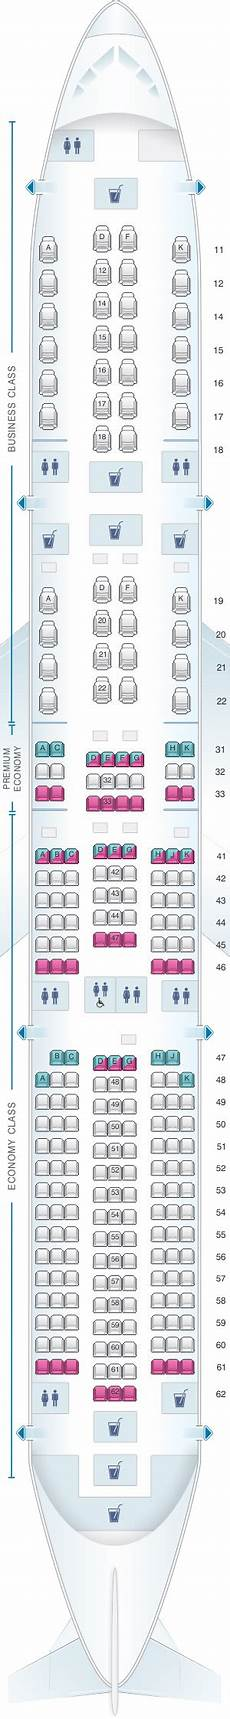 Airbus A350 900 Seating Chart Seat Map Singapore Airlines Airbus A350 900 Seatmaestro